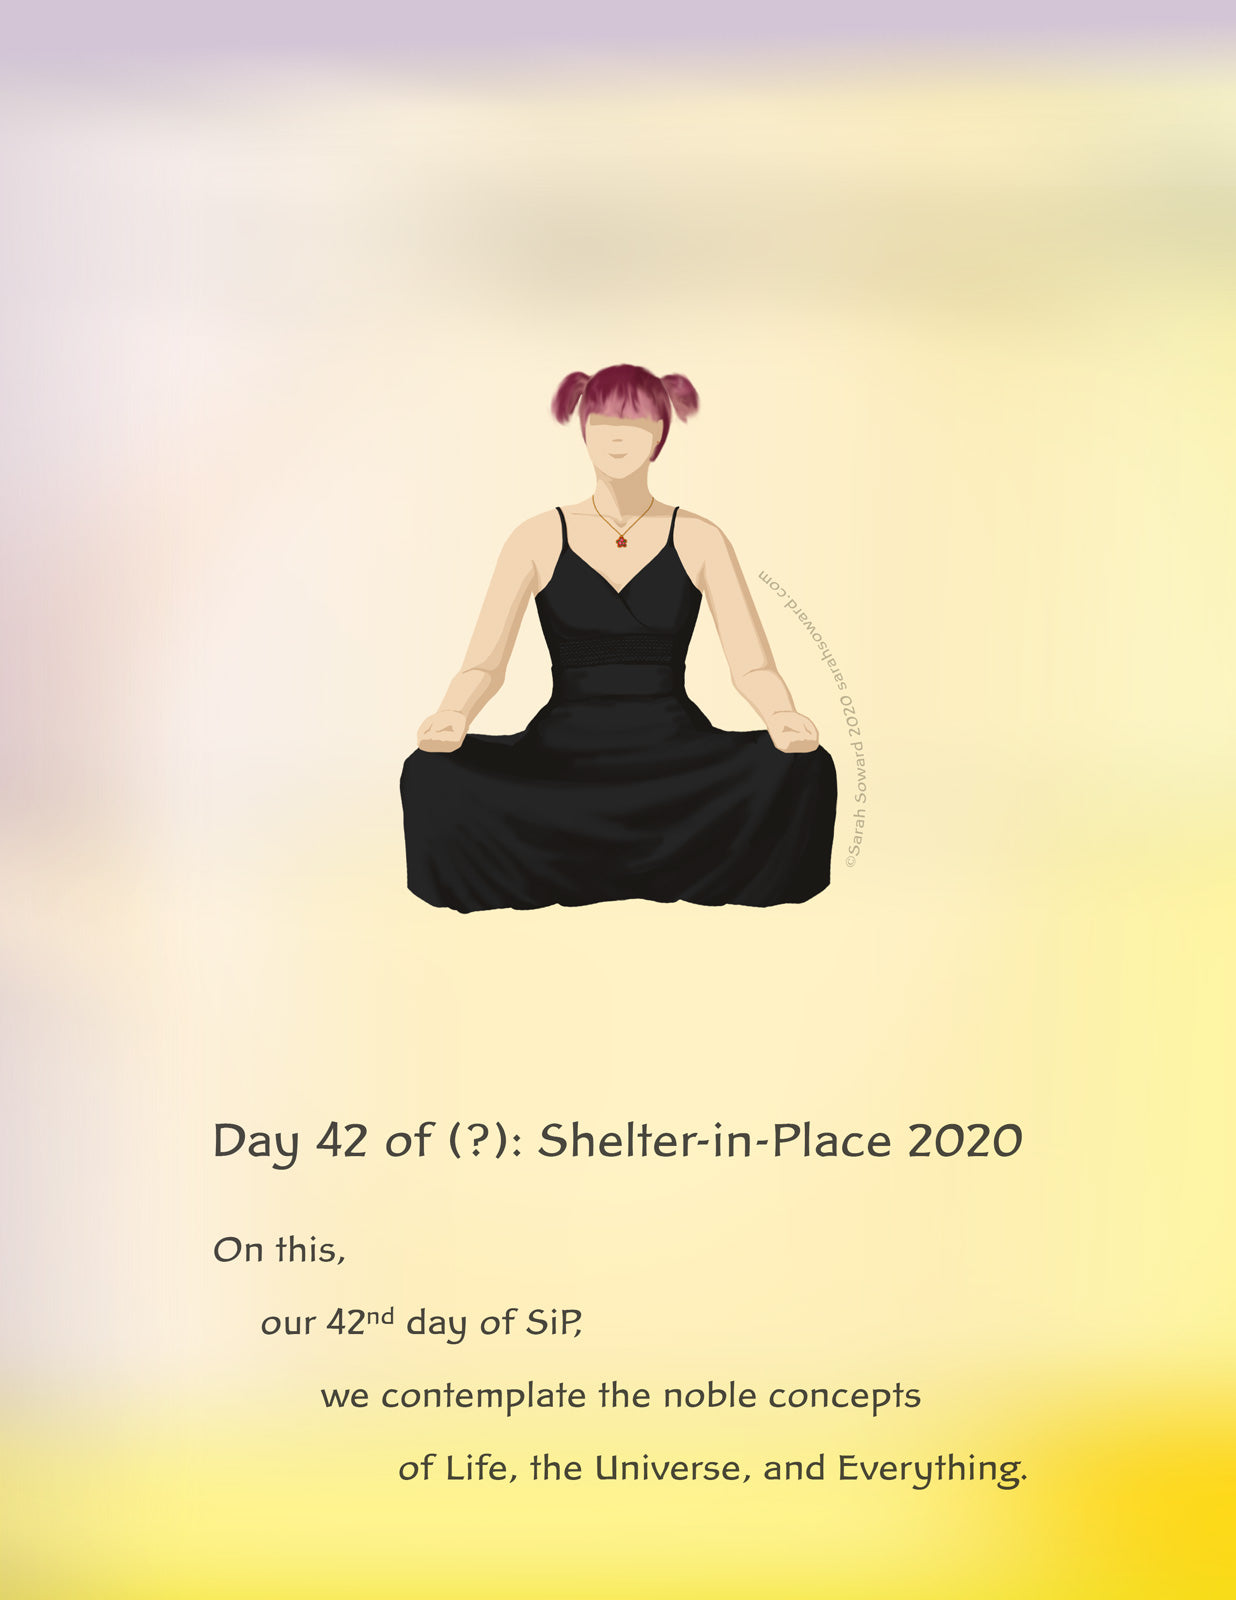 A woman in a black dress sits cross-legged, seeming to float. She has pigtails. The text on the image reads  On this,  our 42nd day of SiP,  we contemplate the noble concepts of Life, the Universe, and Everything.